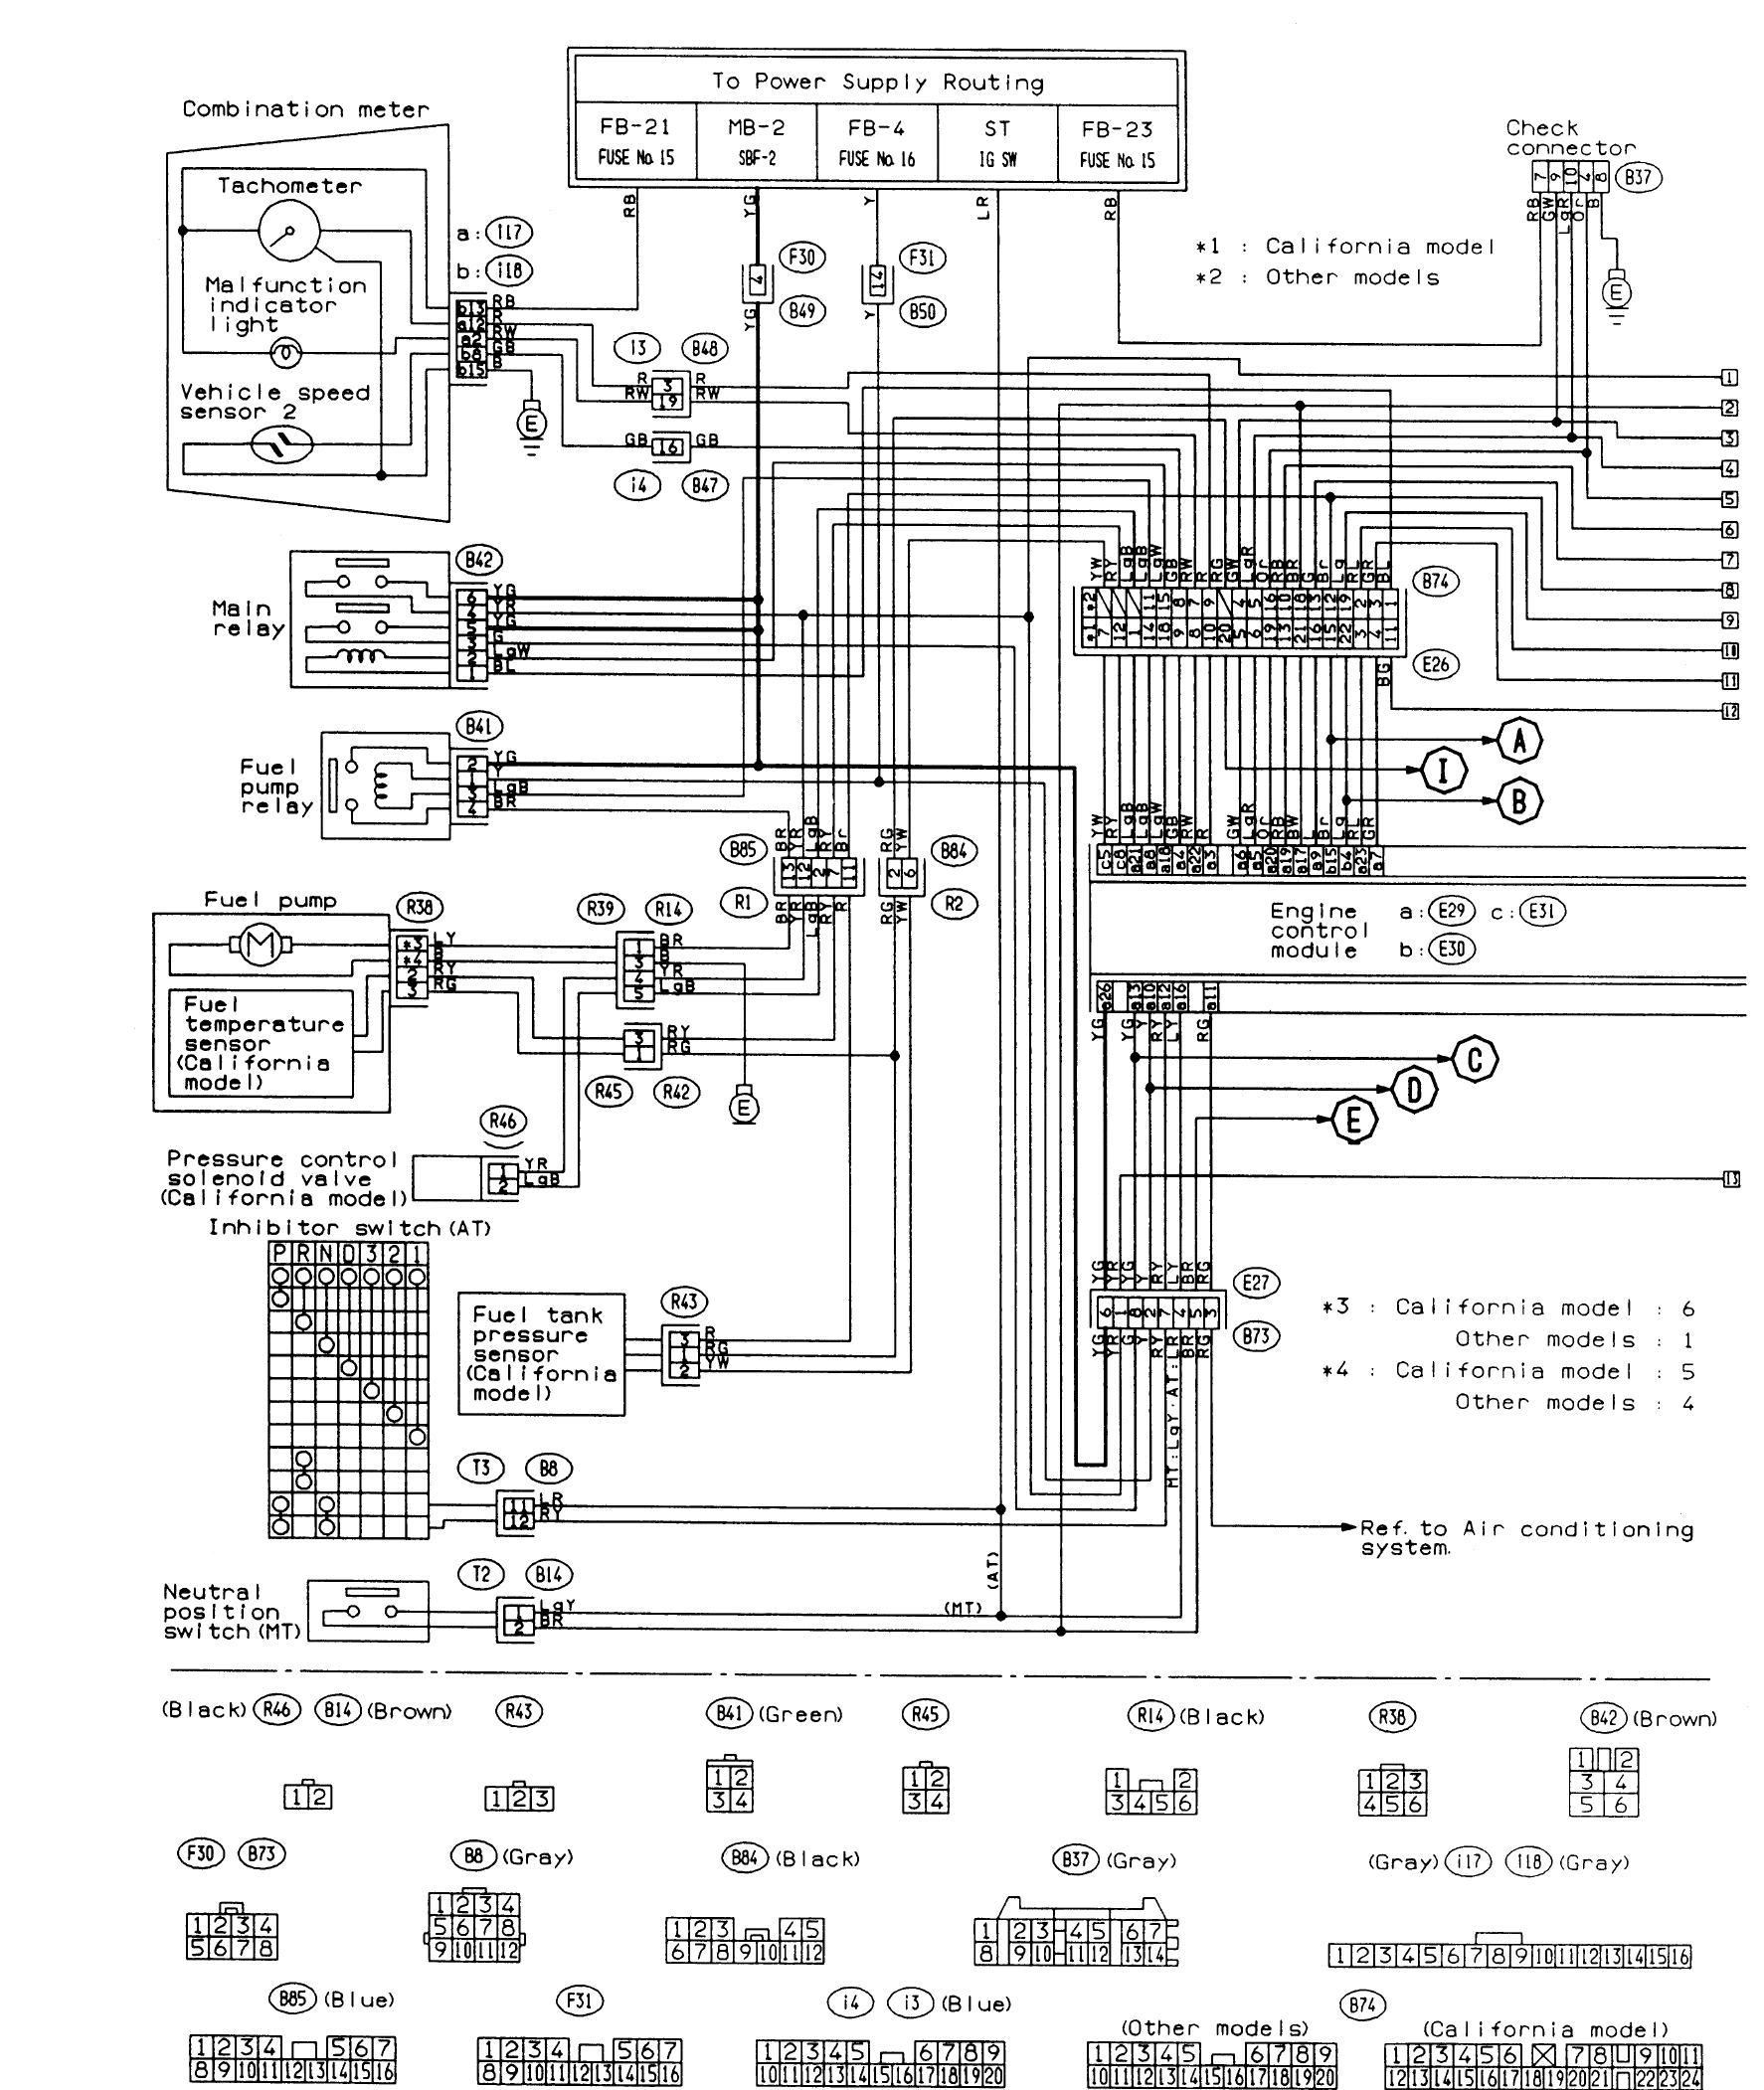 subaru ecu wiring diagram FUSlrCX subaru wiring diagrams 1992 subaru legacy heater wiring schematic Wiring Harness Diagram at gsmx.co